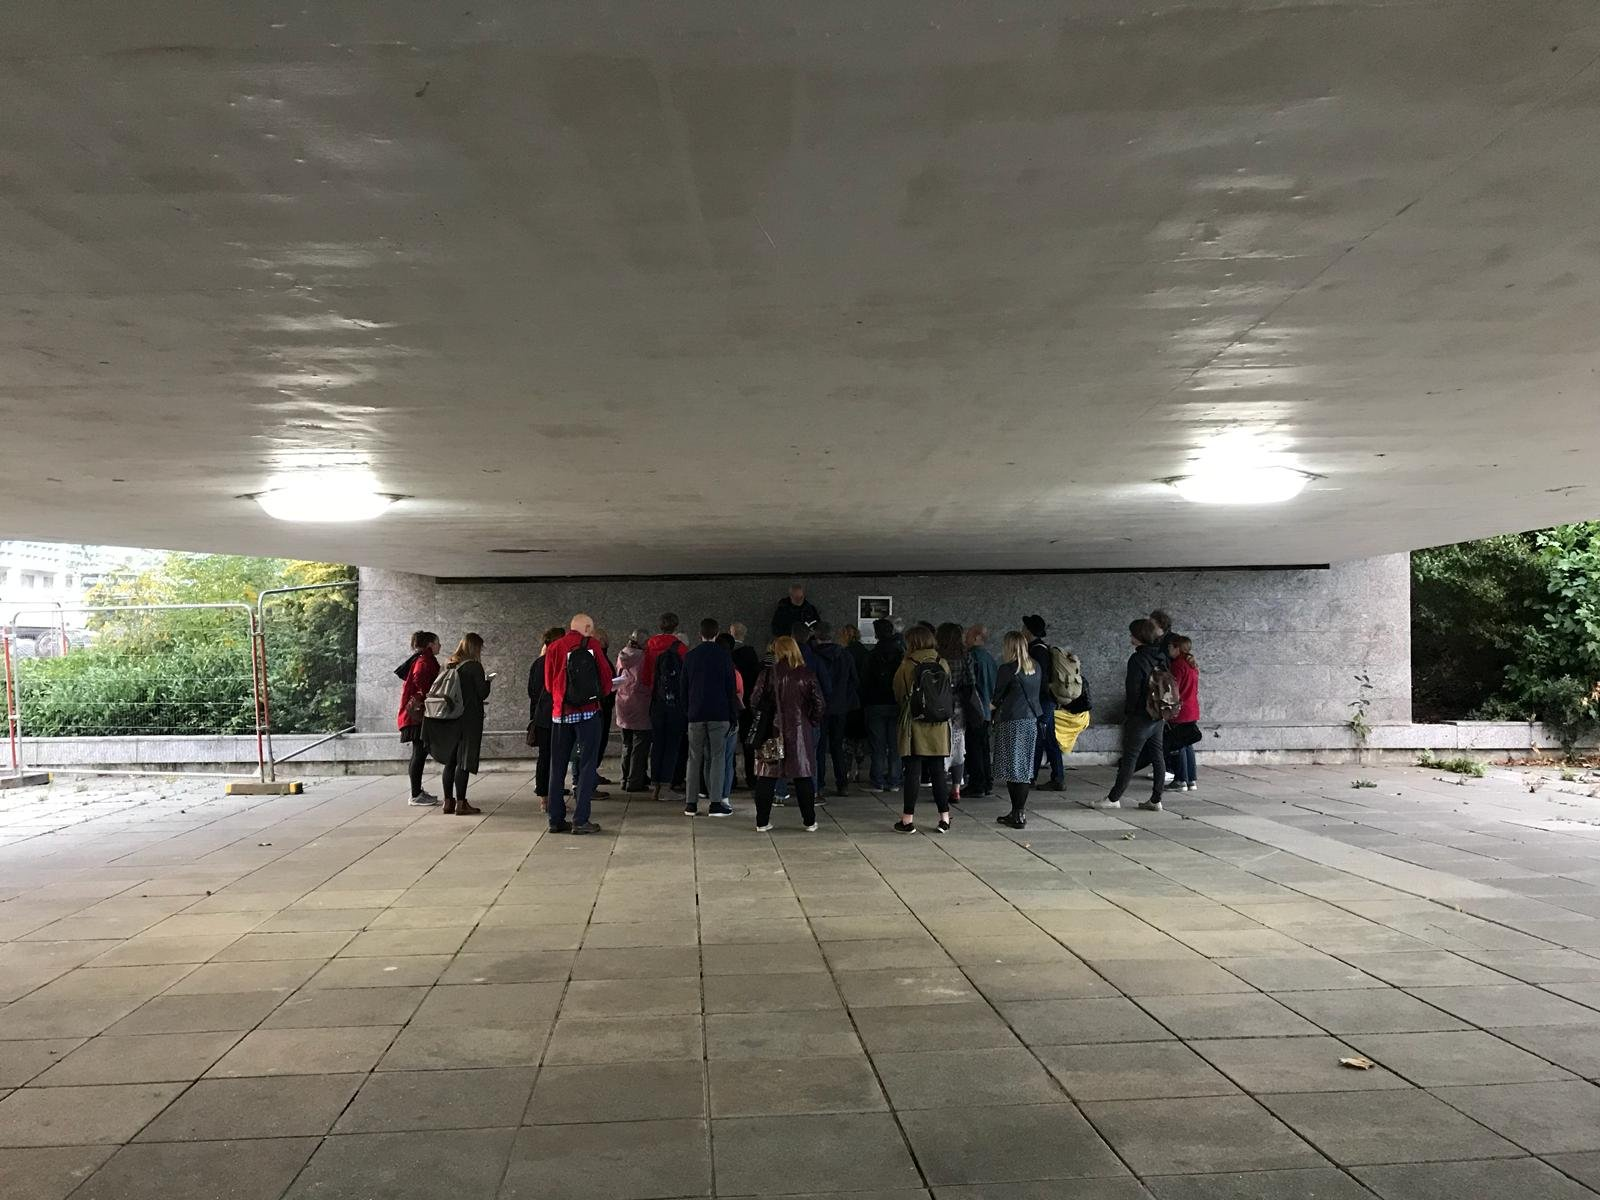 7-Phil Smith (2018) The MK Myth [walking reading tour and book launch] presented at Gulliver's Land Milton Keynes as part of The Groundwork Weekender (2018) curated by Tracing the Pathway. Image Credit = Laura Sweeney